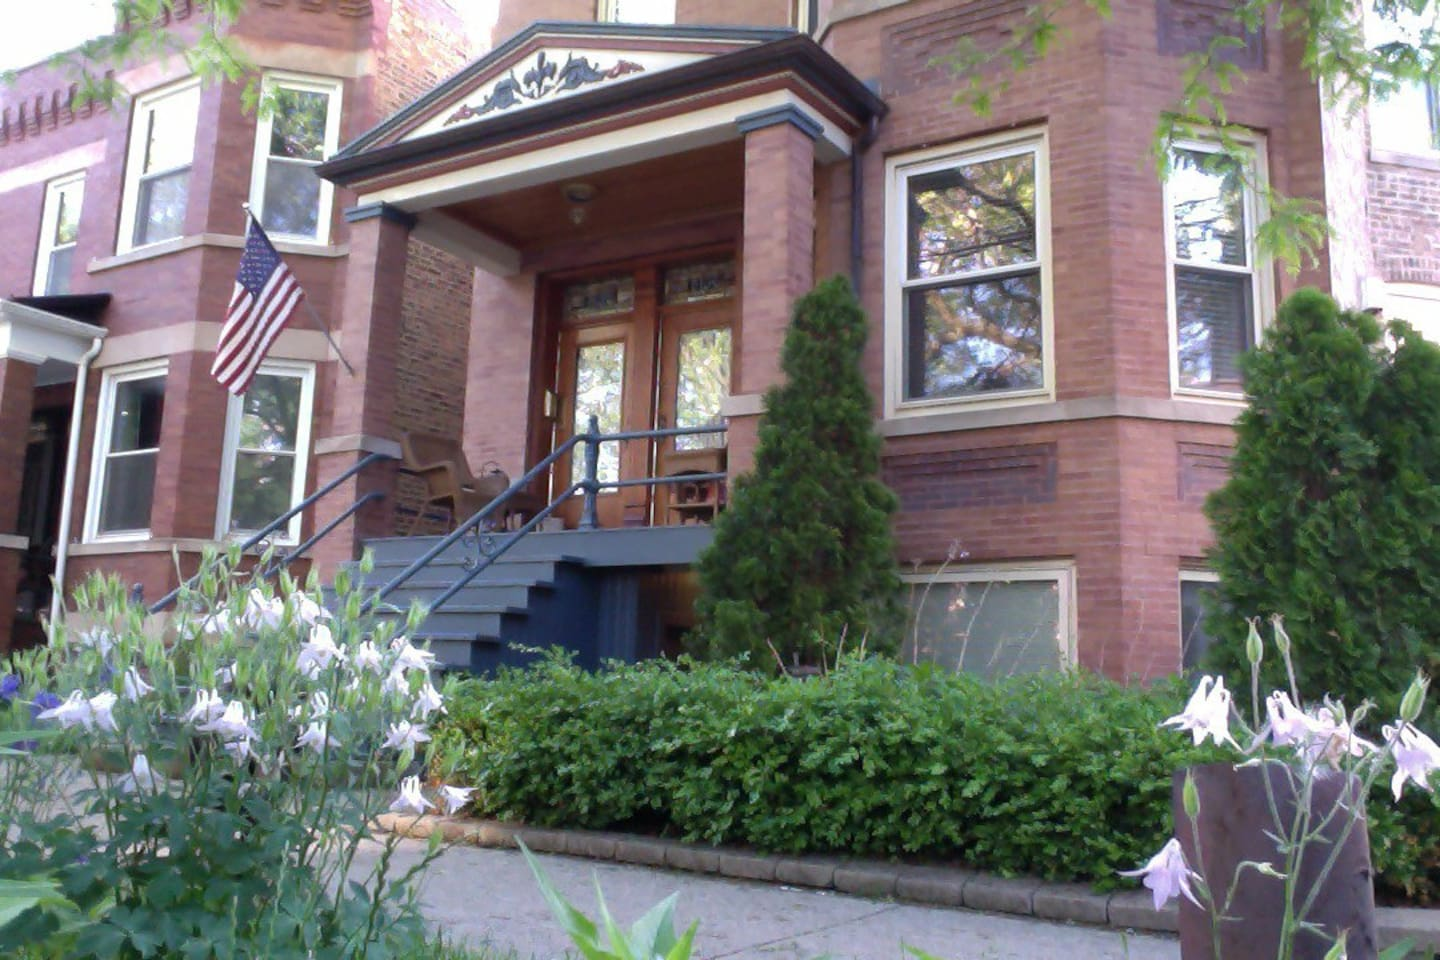 Authentic Chicago Brownstone home in the heart of Chicago